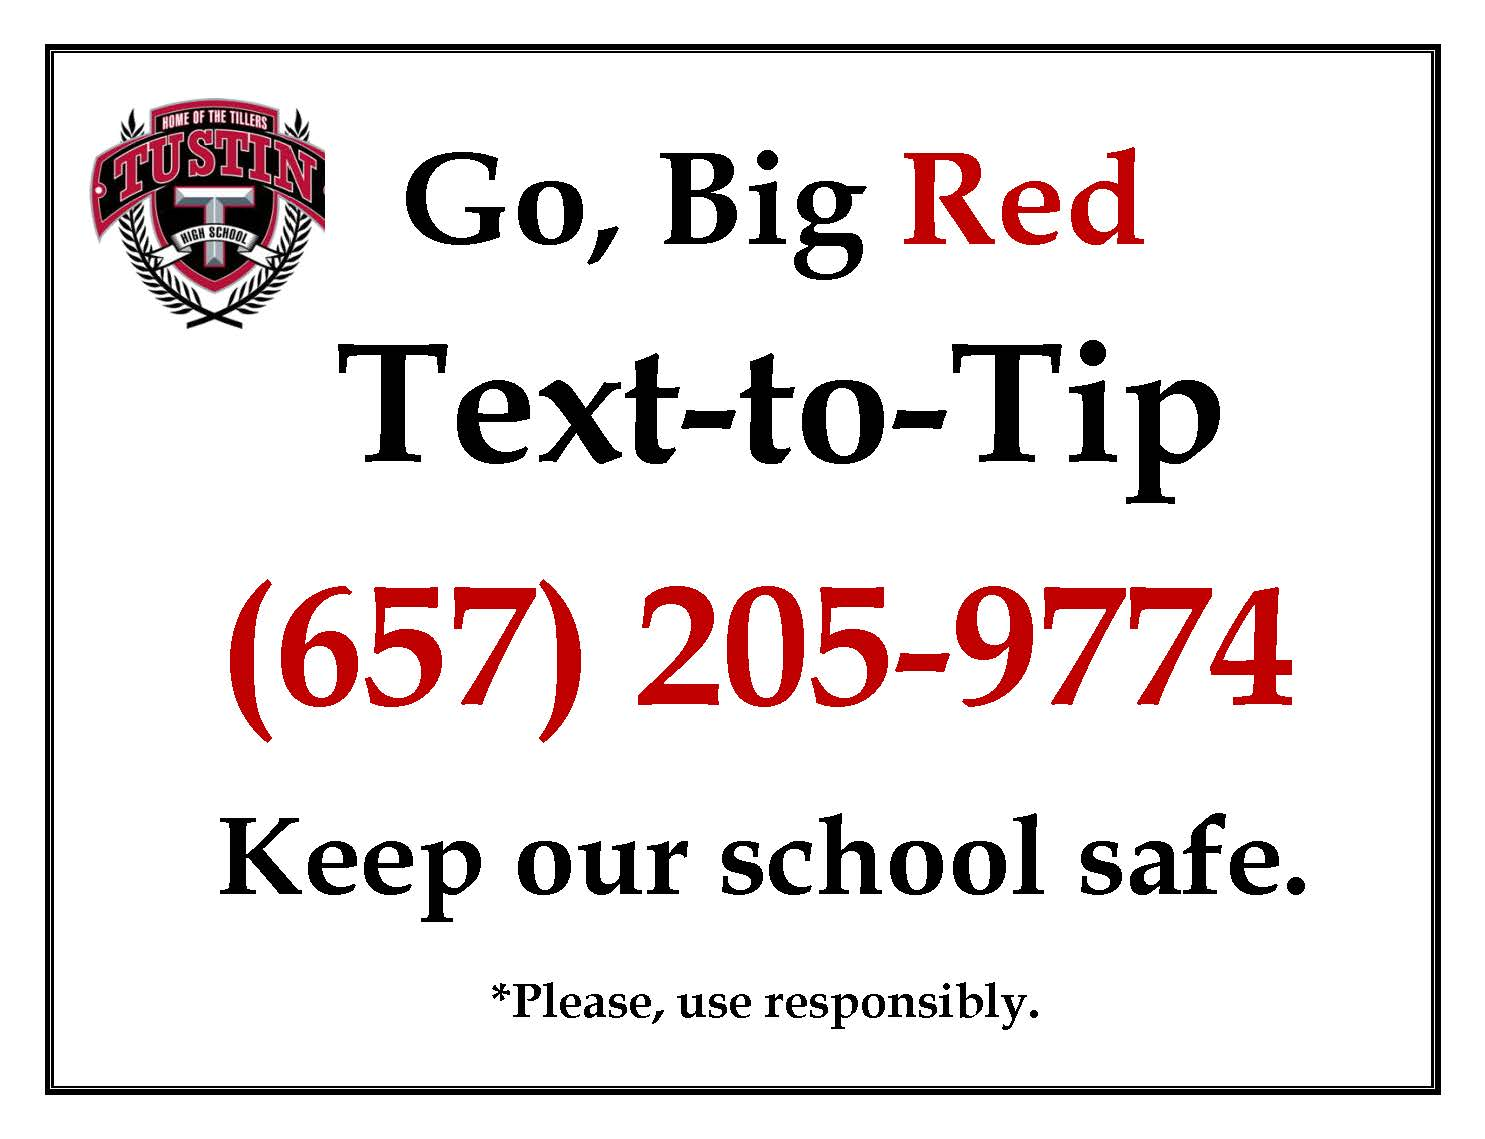 Go Big Red, Text to Tip phone number, Keep our School Safe.